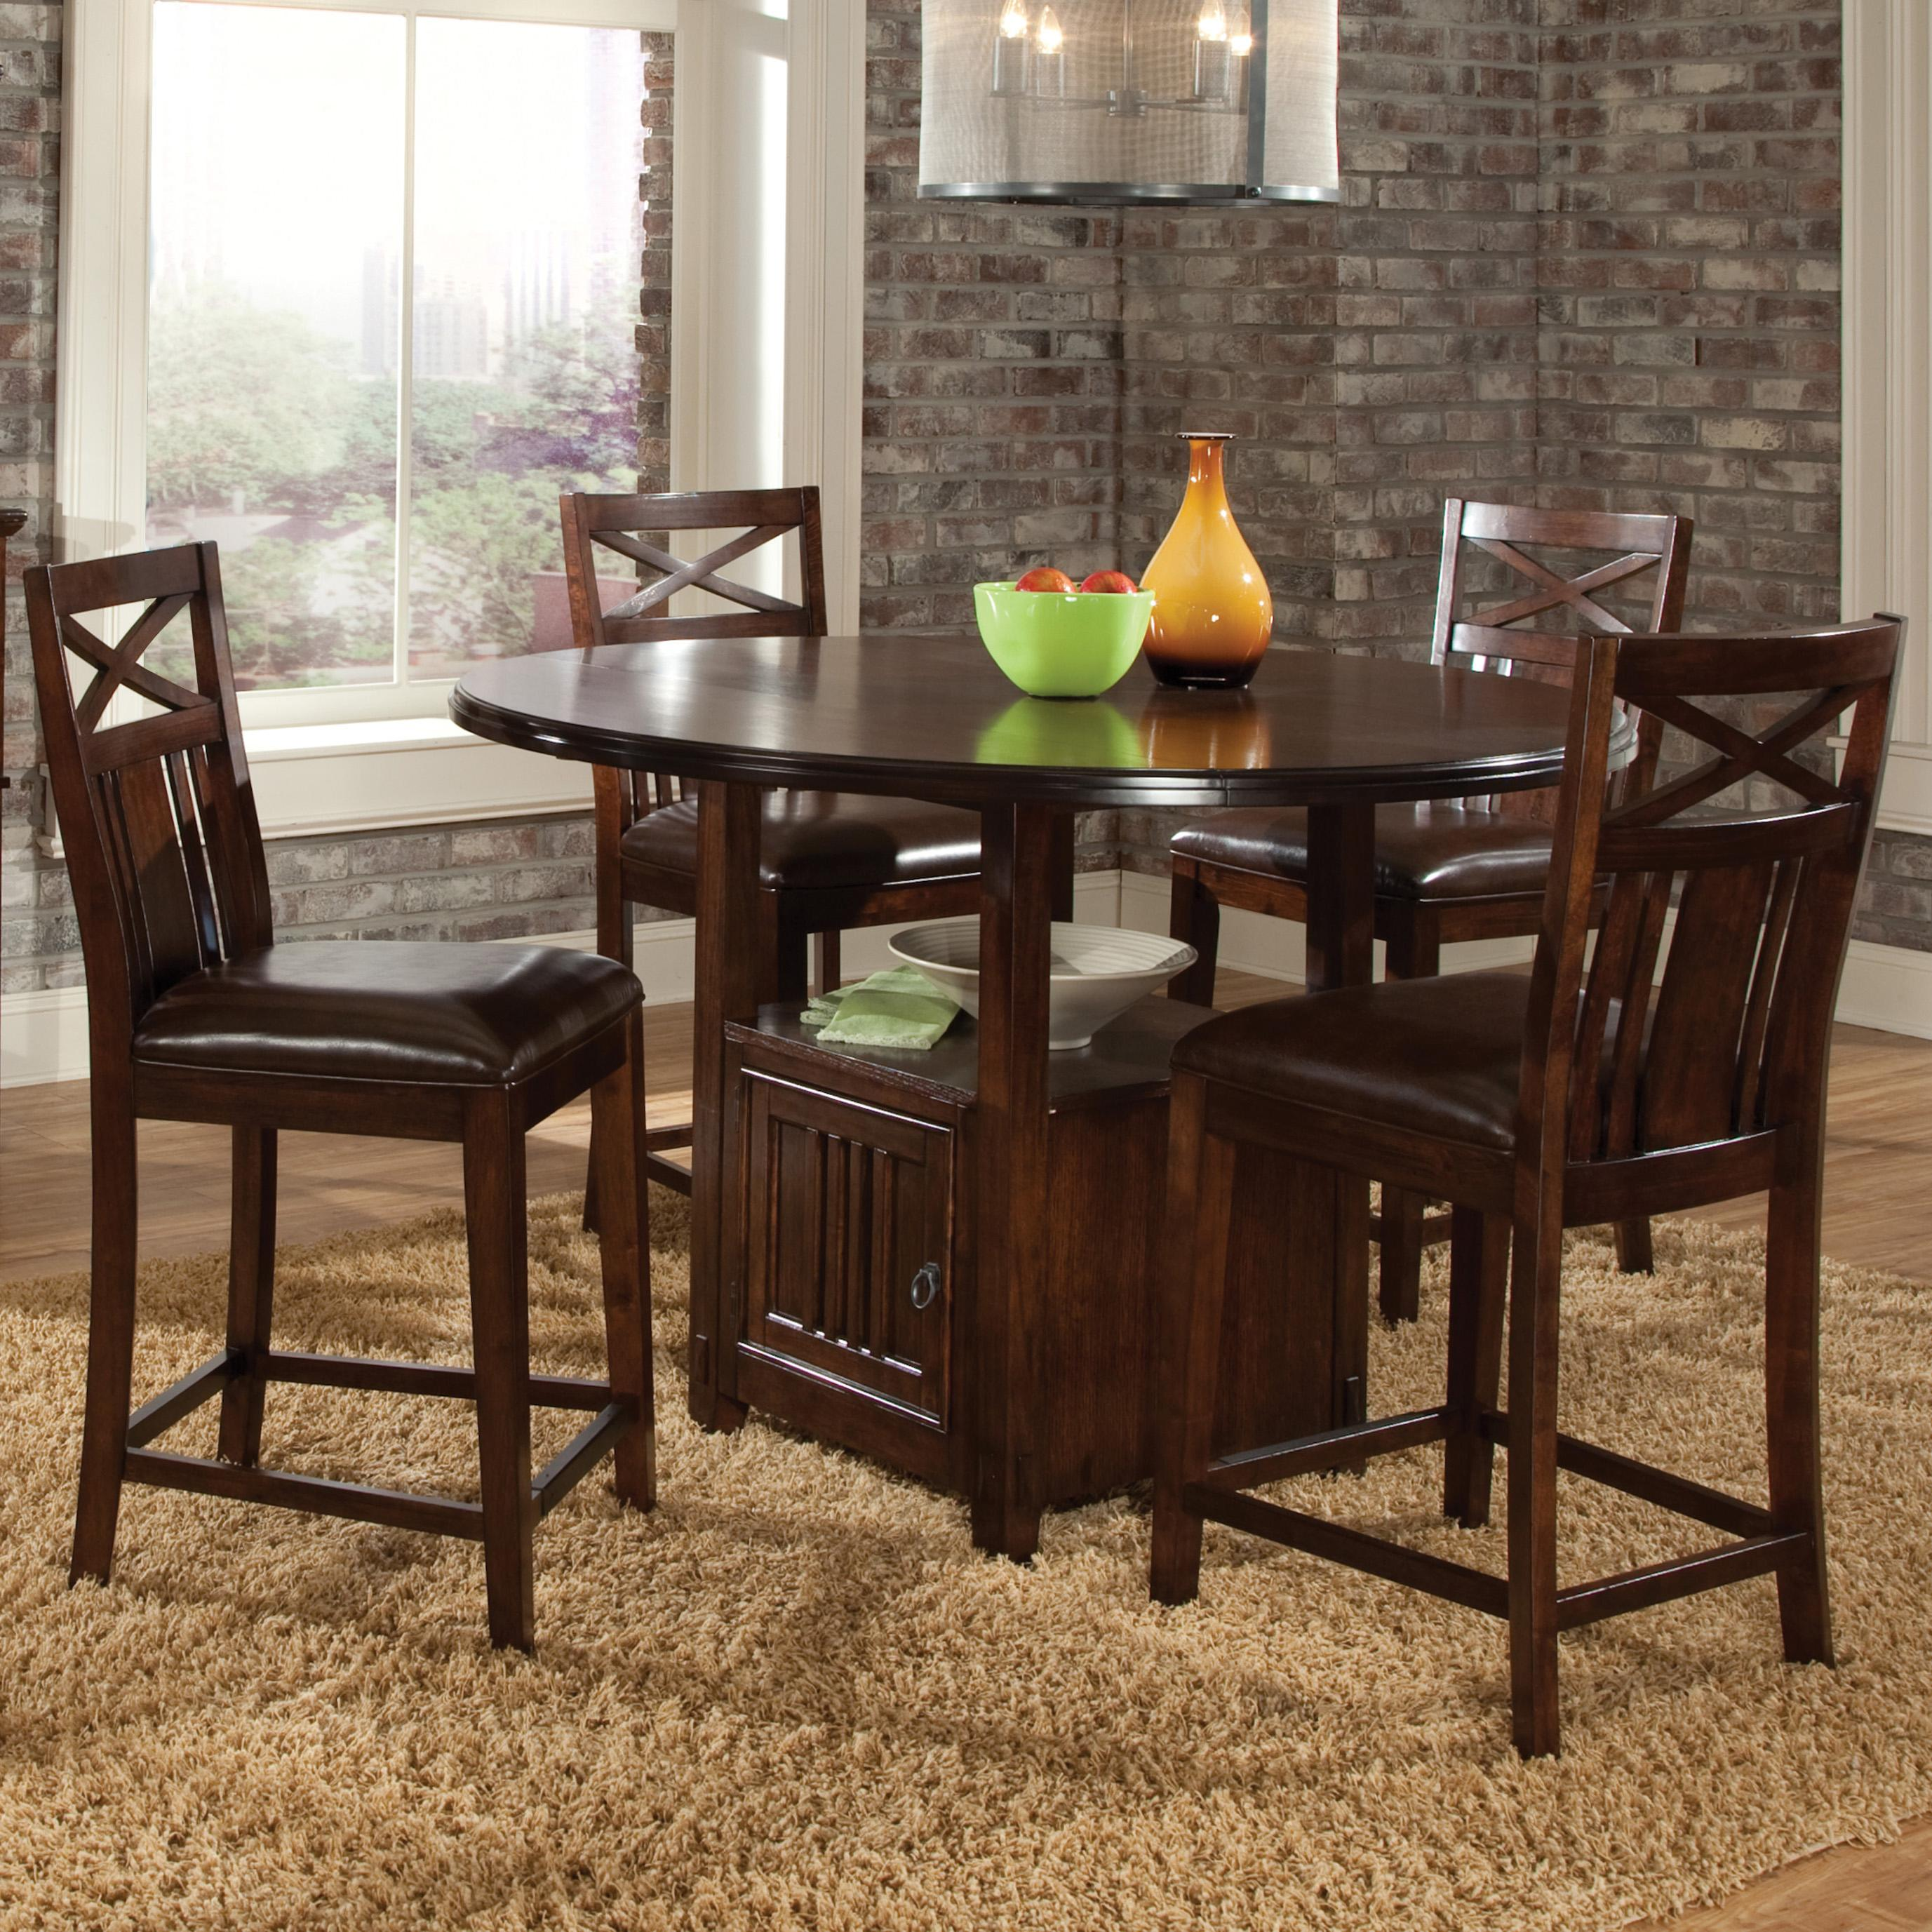 Standard Furniture Sonoma 5 Piece Counter Height Table and Chair Set - Item Number: 11906+4x11914